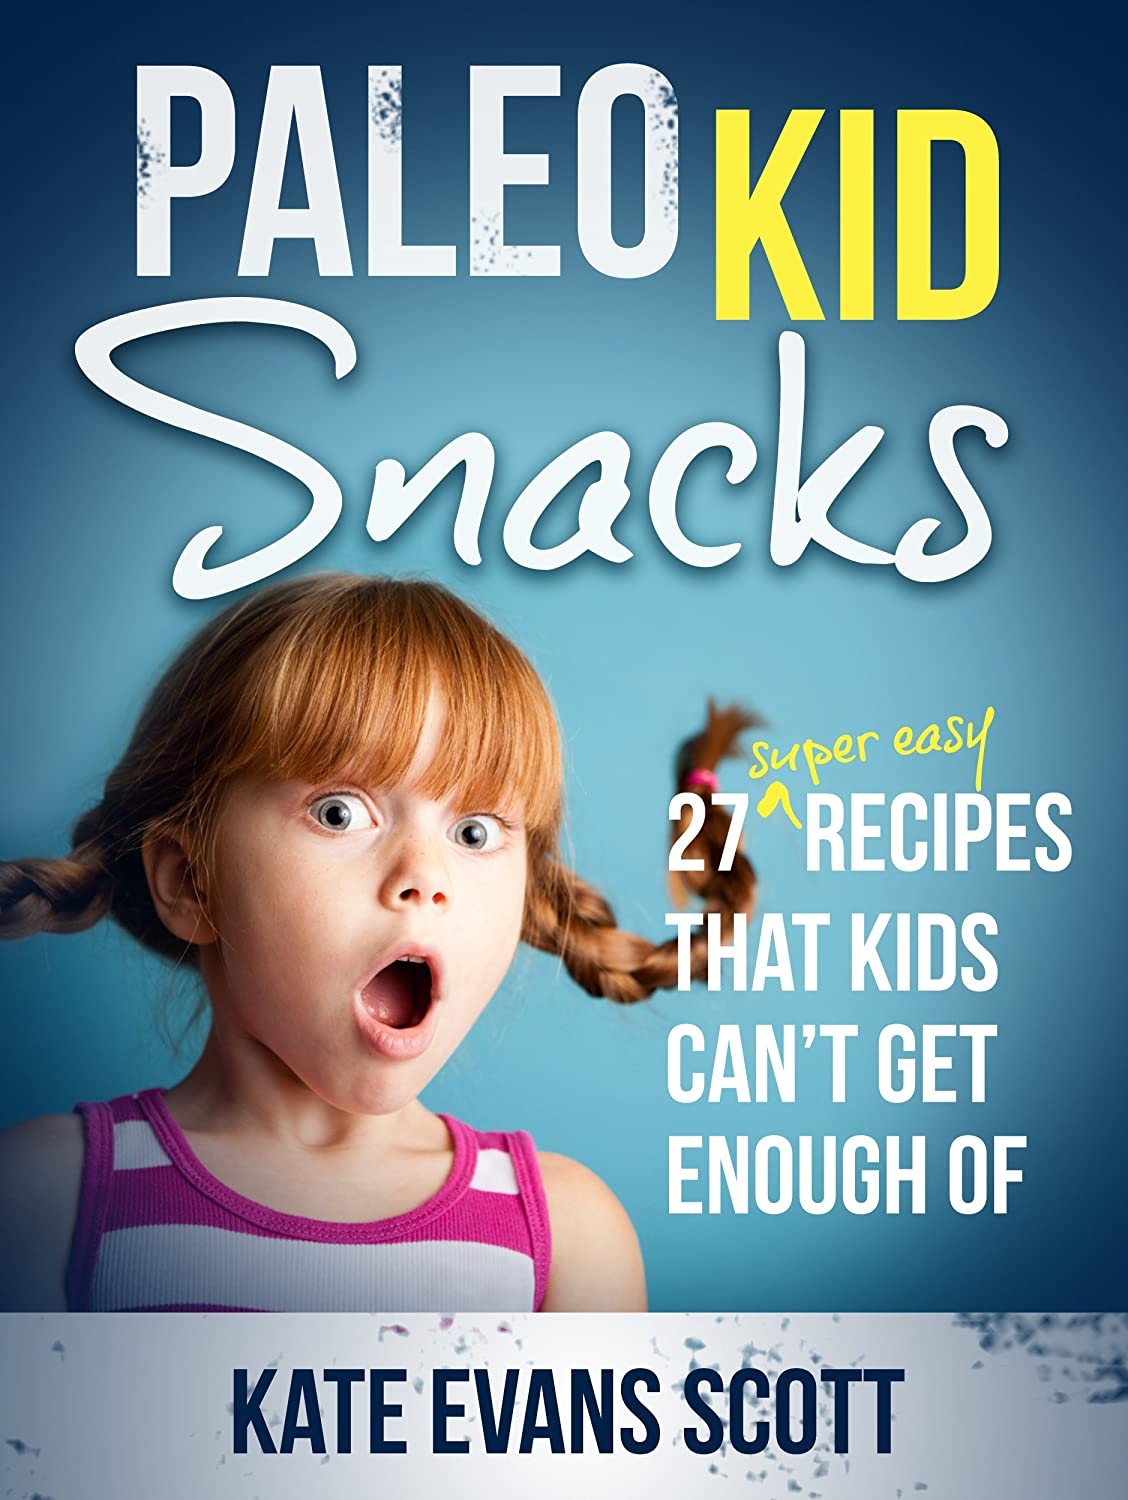 http://www.amazon.com/Paleo-Kid-Snacks-Recipes-Cookbook-ebook/dp/B00CAZGOZI/ref=as_sl_pc_ss_til?tag=lettfromahome-20&linkCode=w01&linkId=GKTCKYRPM4YWLTOM&creativeASIN=B00CAZGOZI